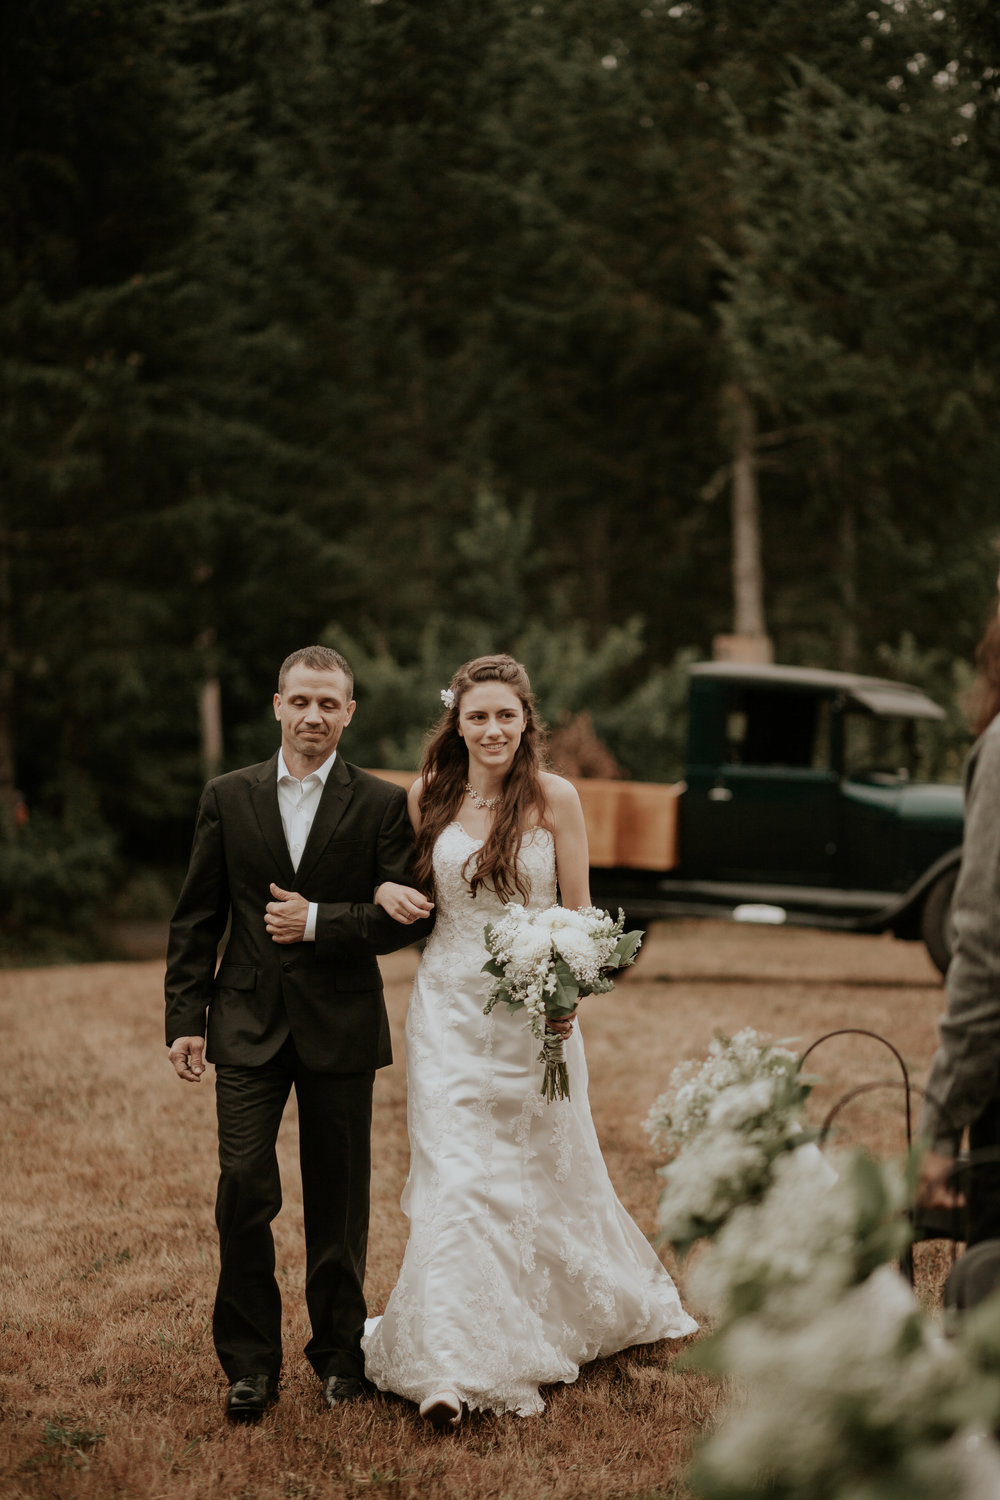 Port-Angeles-elopement-wedding-pnw-olympic-peninsula-photographer-portrait-kayladawnphoto-kayla-dawn-photography-olympic-national-park-53.jpg